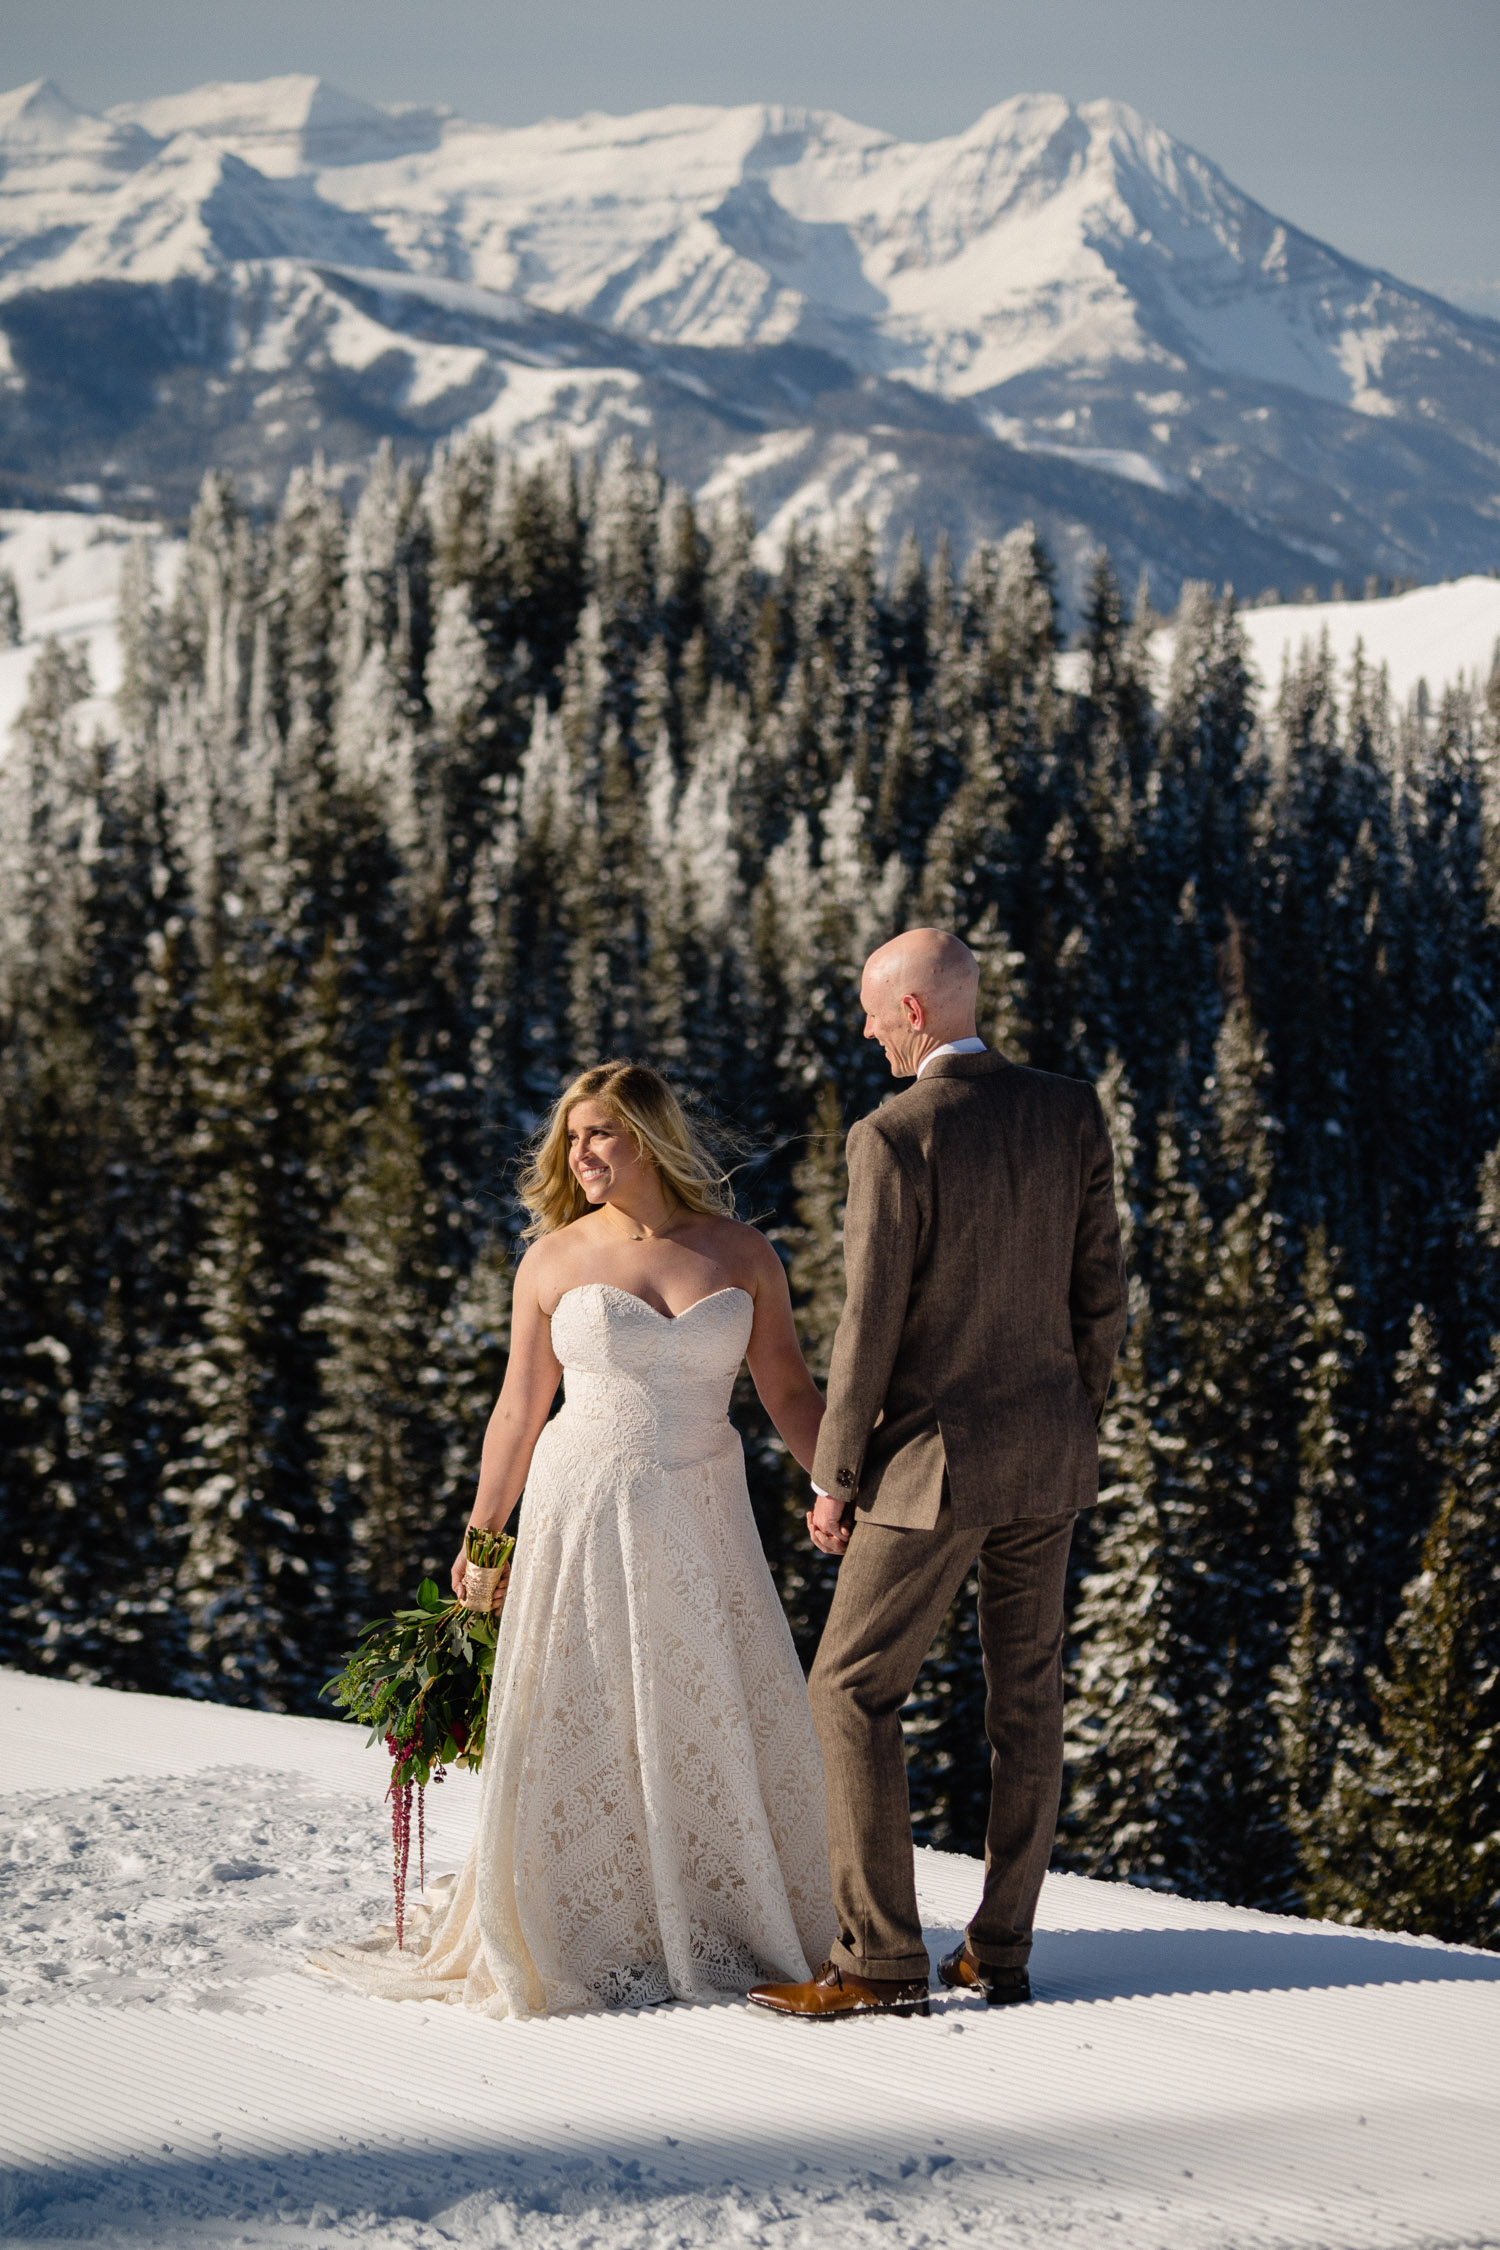 bride and groom on snowy mountain with trees